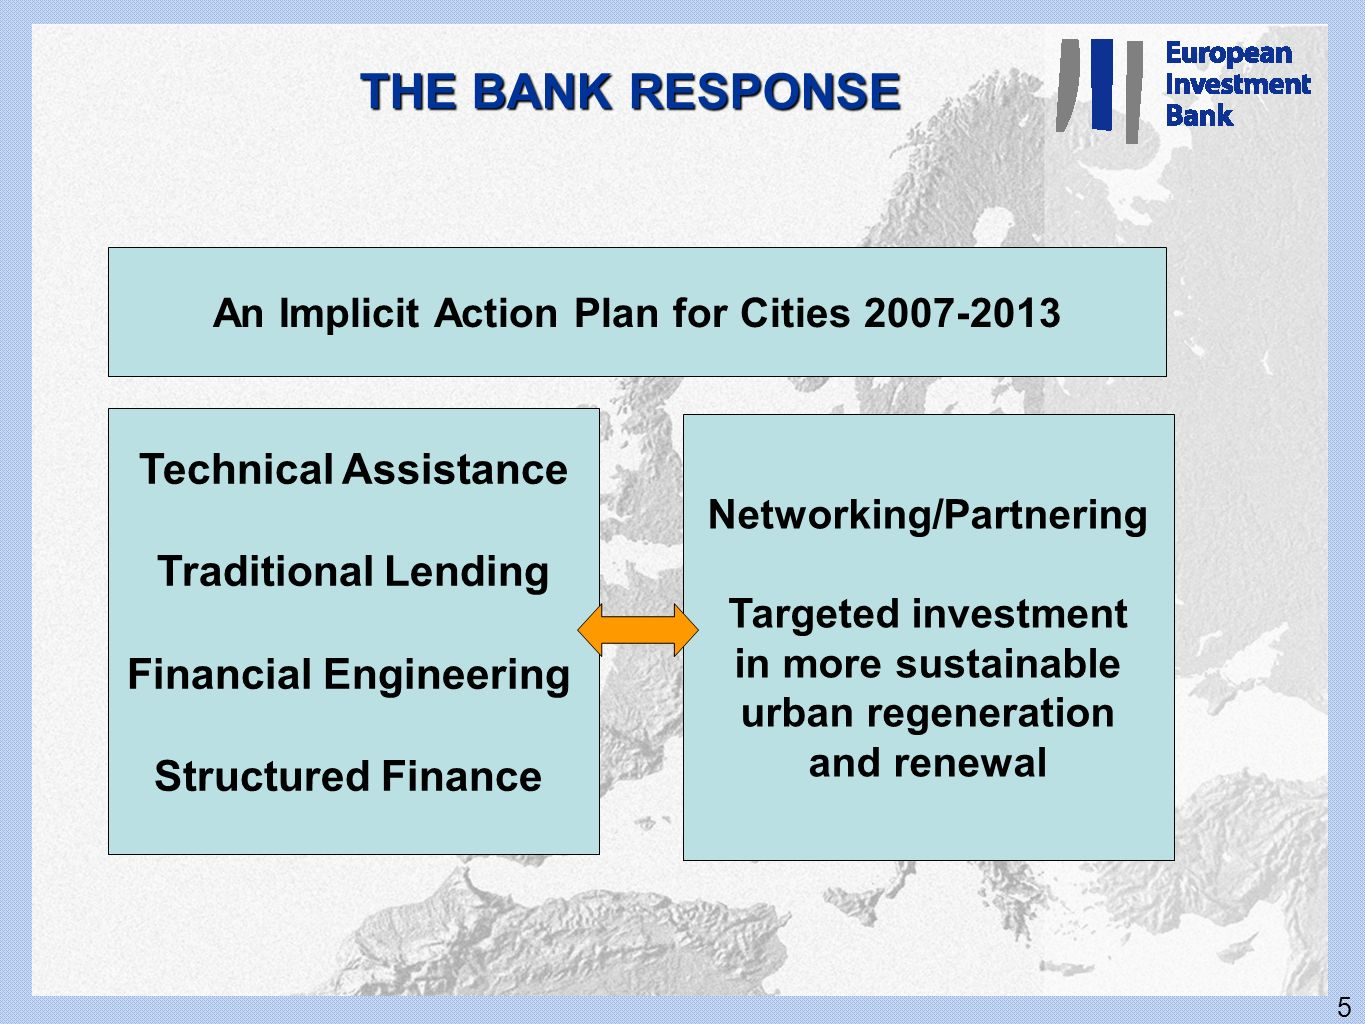 5 THE BANK RESPONSE An Implicit Action Plan for Cities 2007-2013 Technical Assistance Traditional Lending Financial Engineering Structured Finance Networking/Partnering Targeted investment in more sustainable urban regeneration and renewal